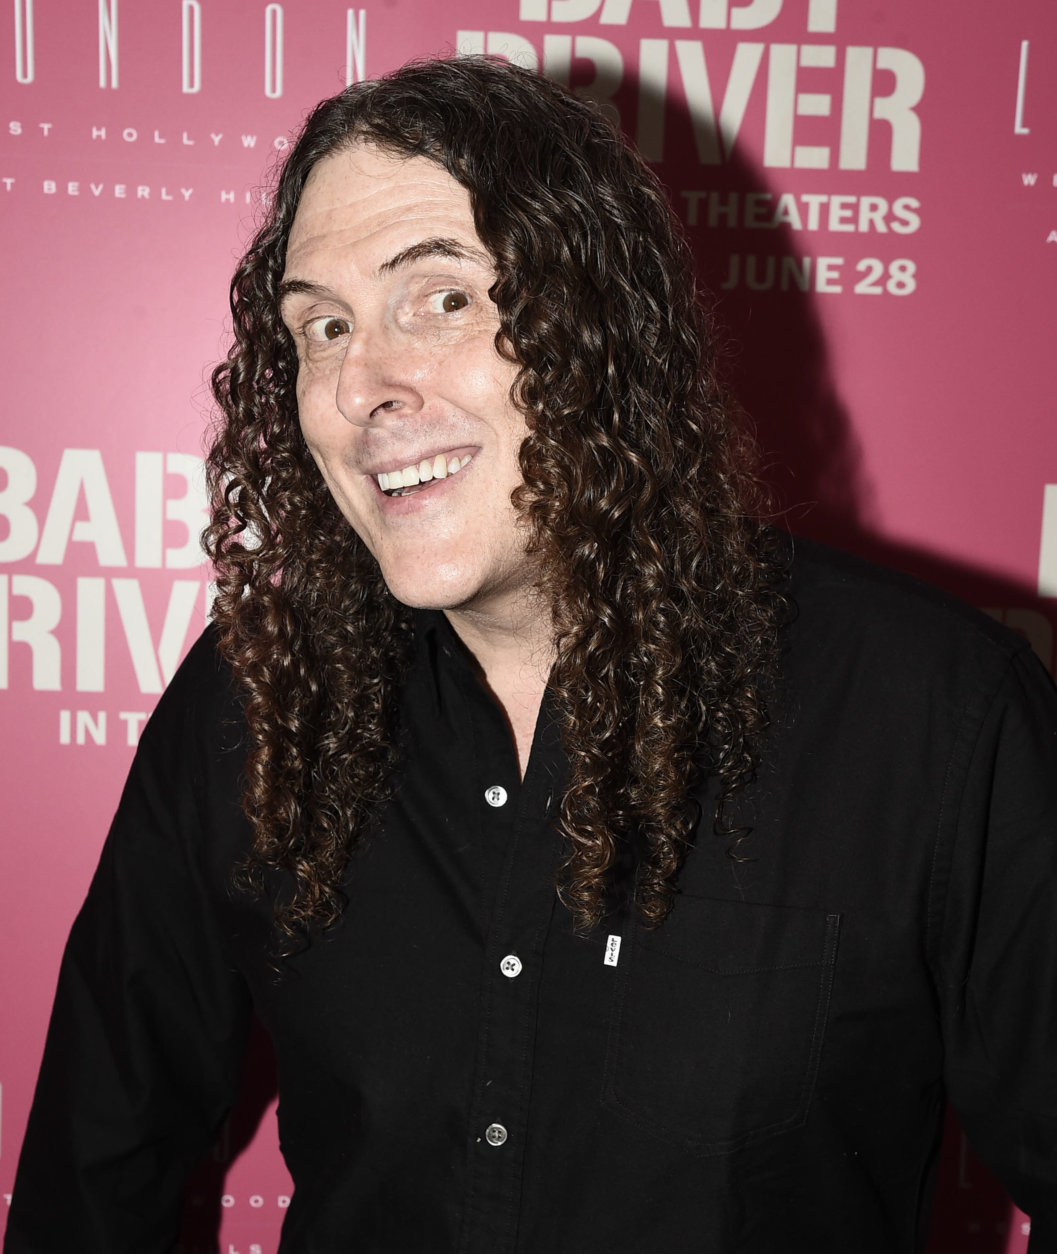 Singer Weird Al Yankovic at TriStar Pictures 'Baby Driver' screening hosted by J.J. Abrams at The London Hotel West Hollywood on Wednesday, May 31, 2017, in West Hollywood, Calif. (Photo by Dan Steinberg/Invision for Sony Pictures/AP Images)